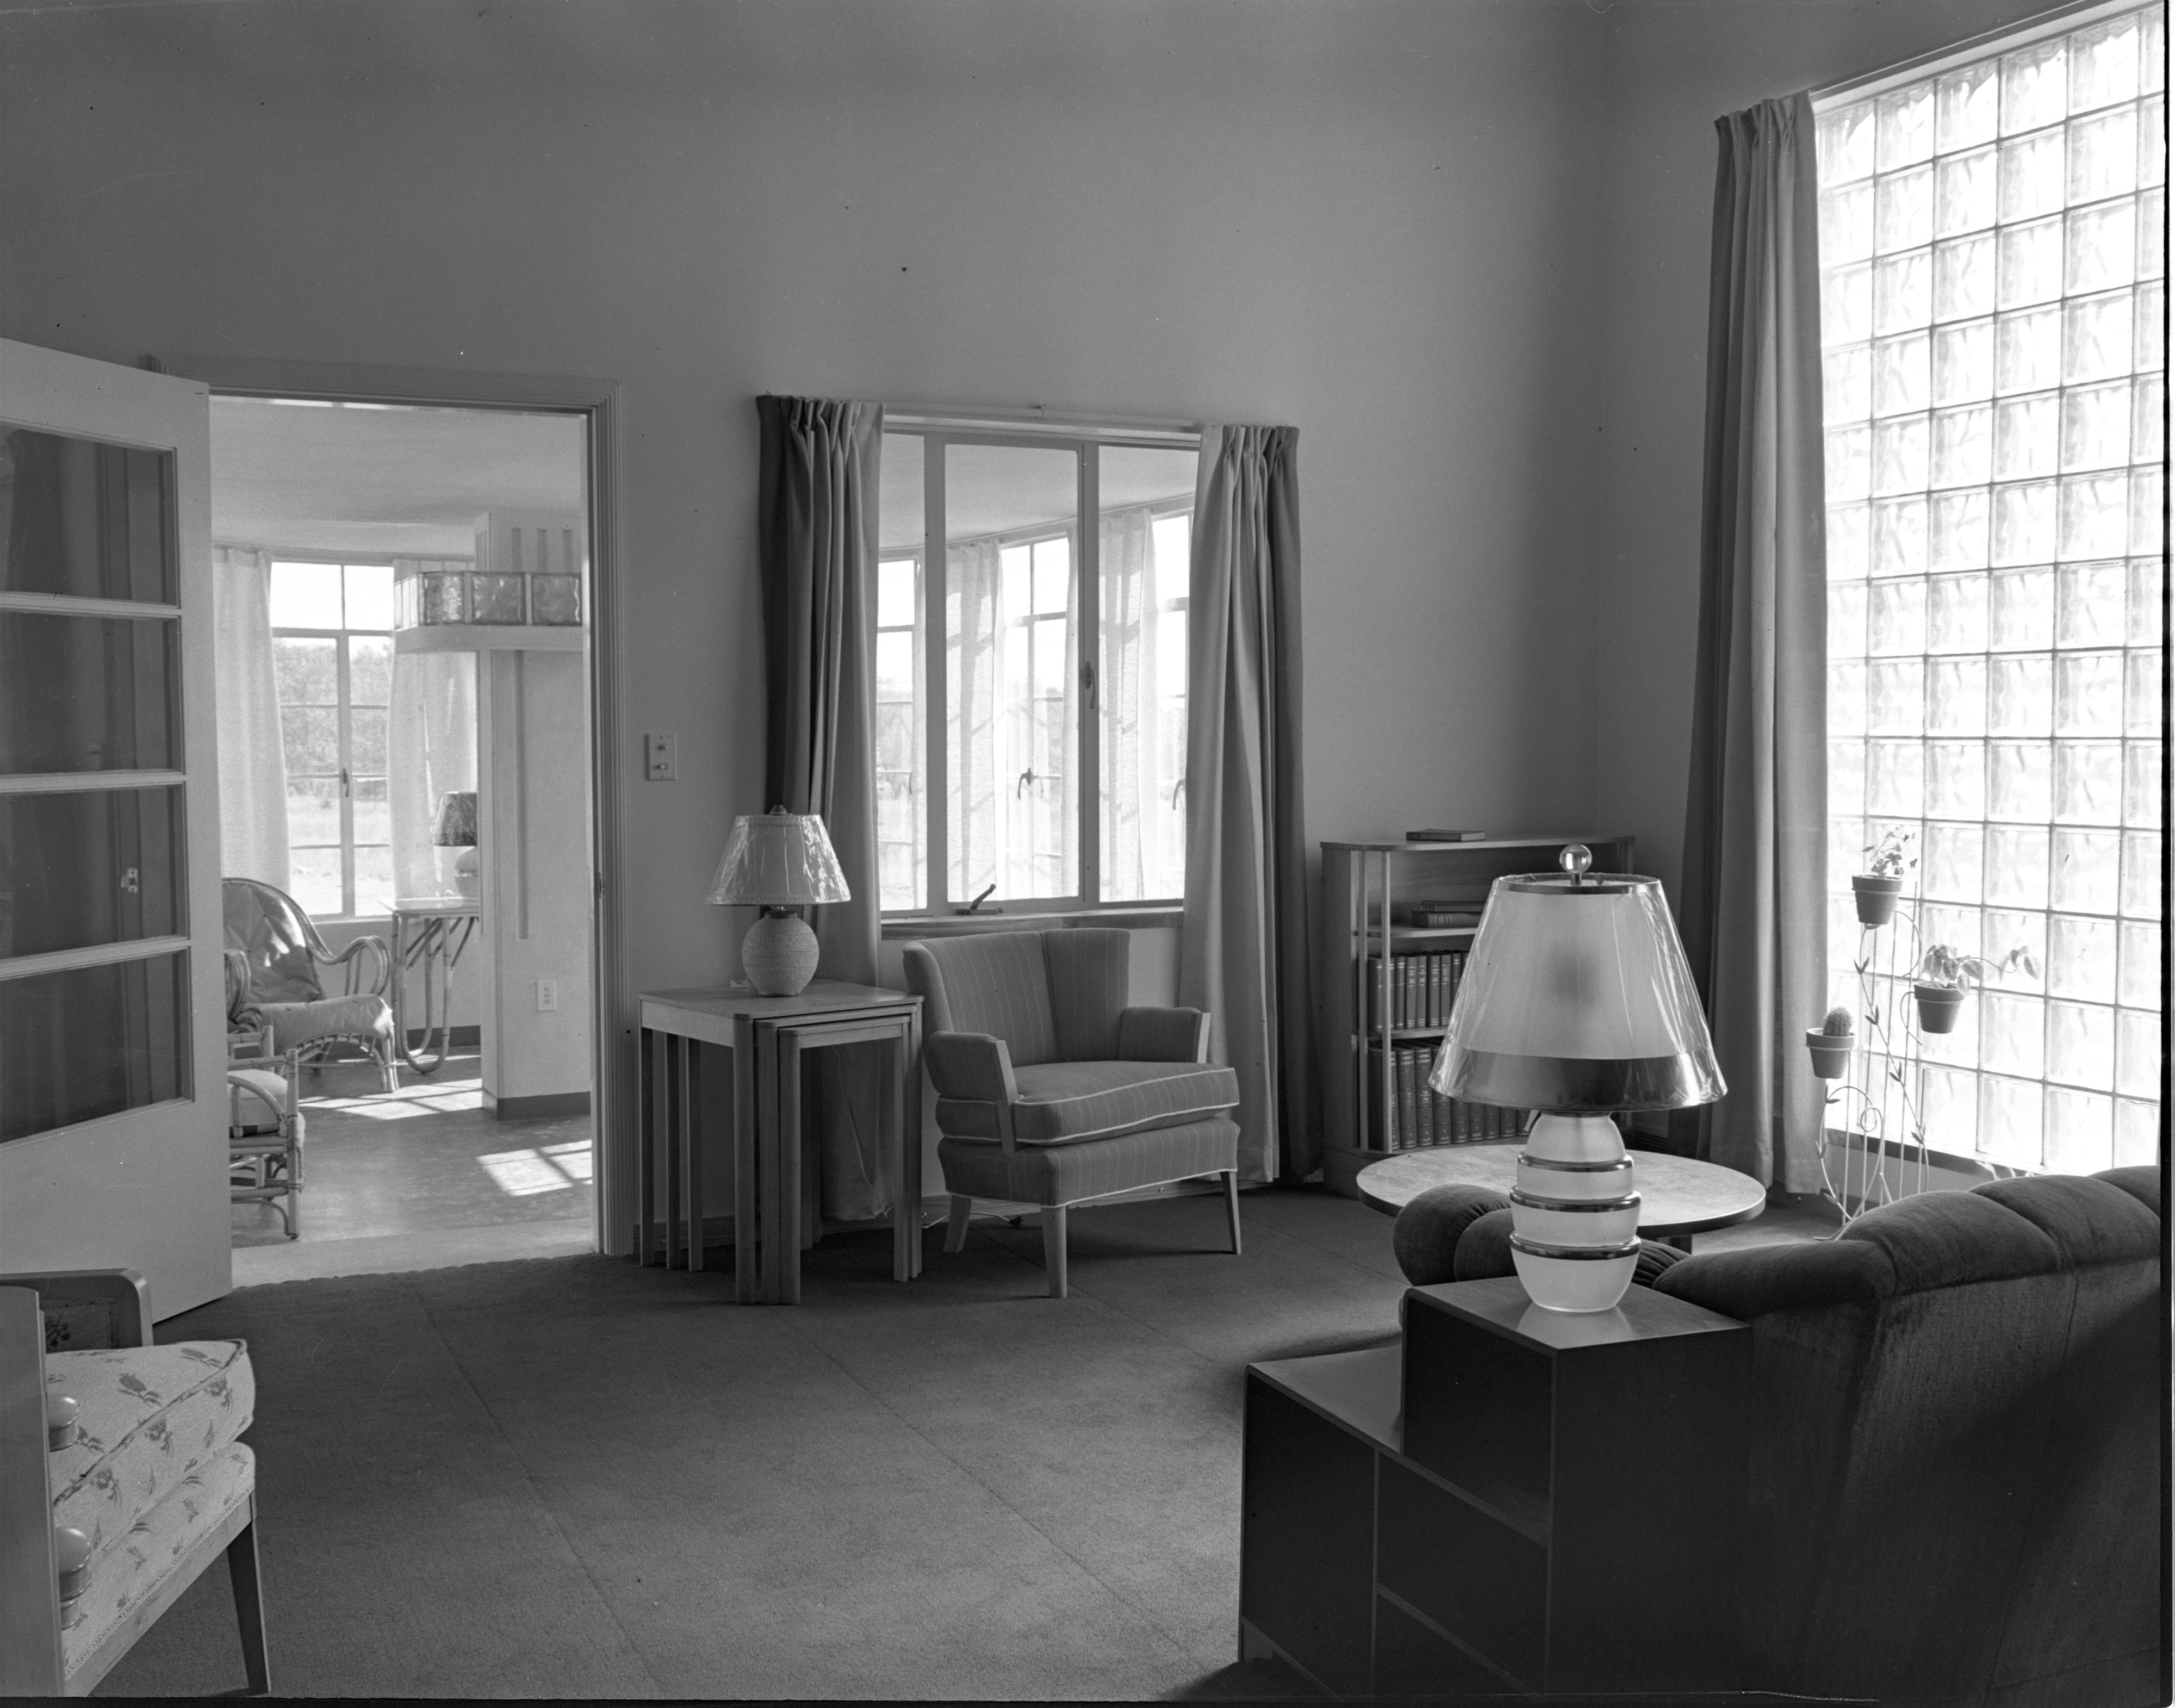 Living Room, Looking Into Sunroom, Of Newly Built 1449 Greenview Drive, October 1938 image